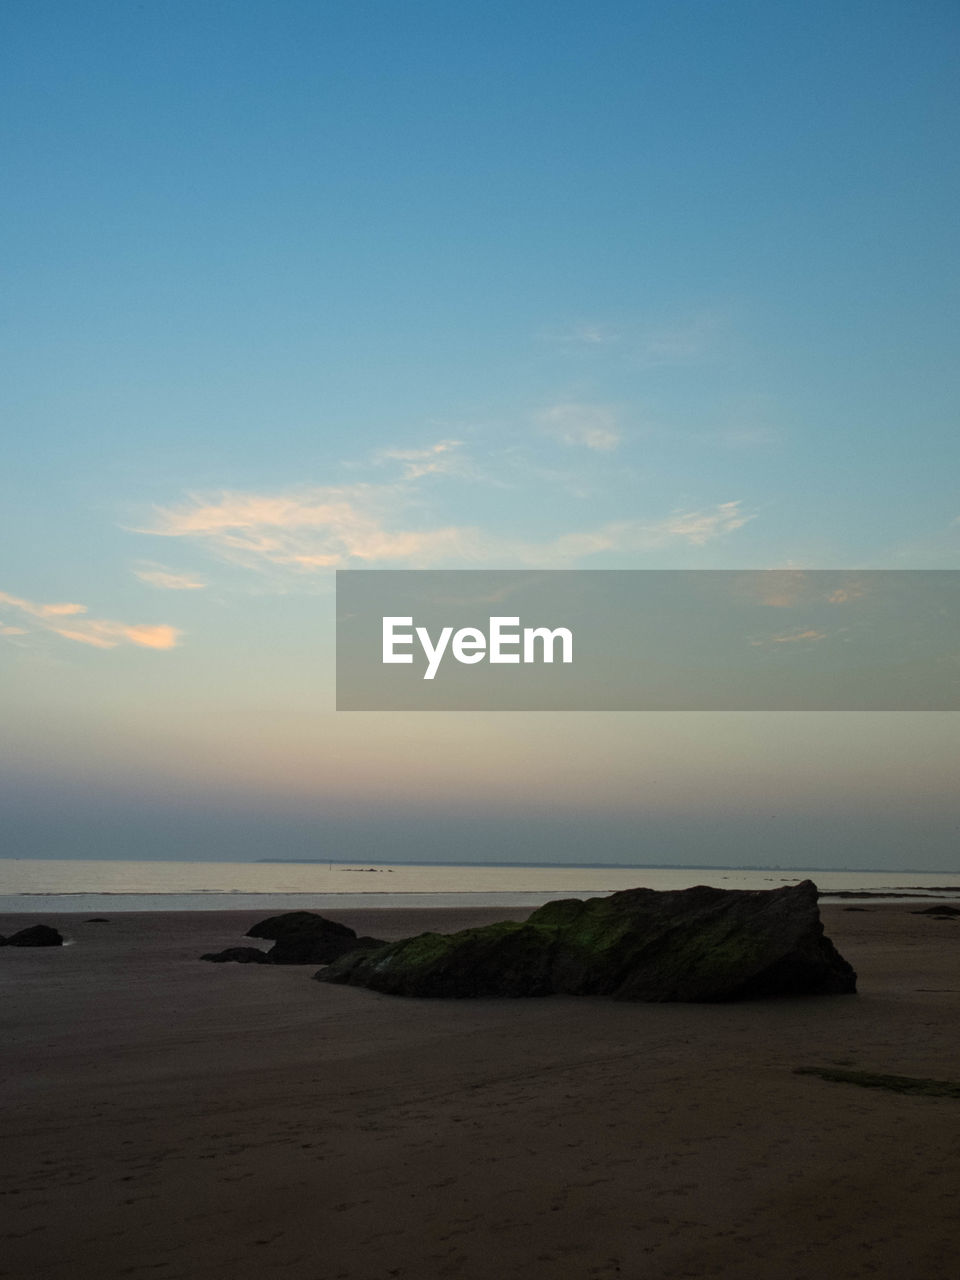 sea, beach, nature, scenics, tranquil scene, horizon over water, tranquility, beauty in nature, sand, water, sky, shore, sunset, outdoors, no people, landscape, blue, travel destinations, day